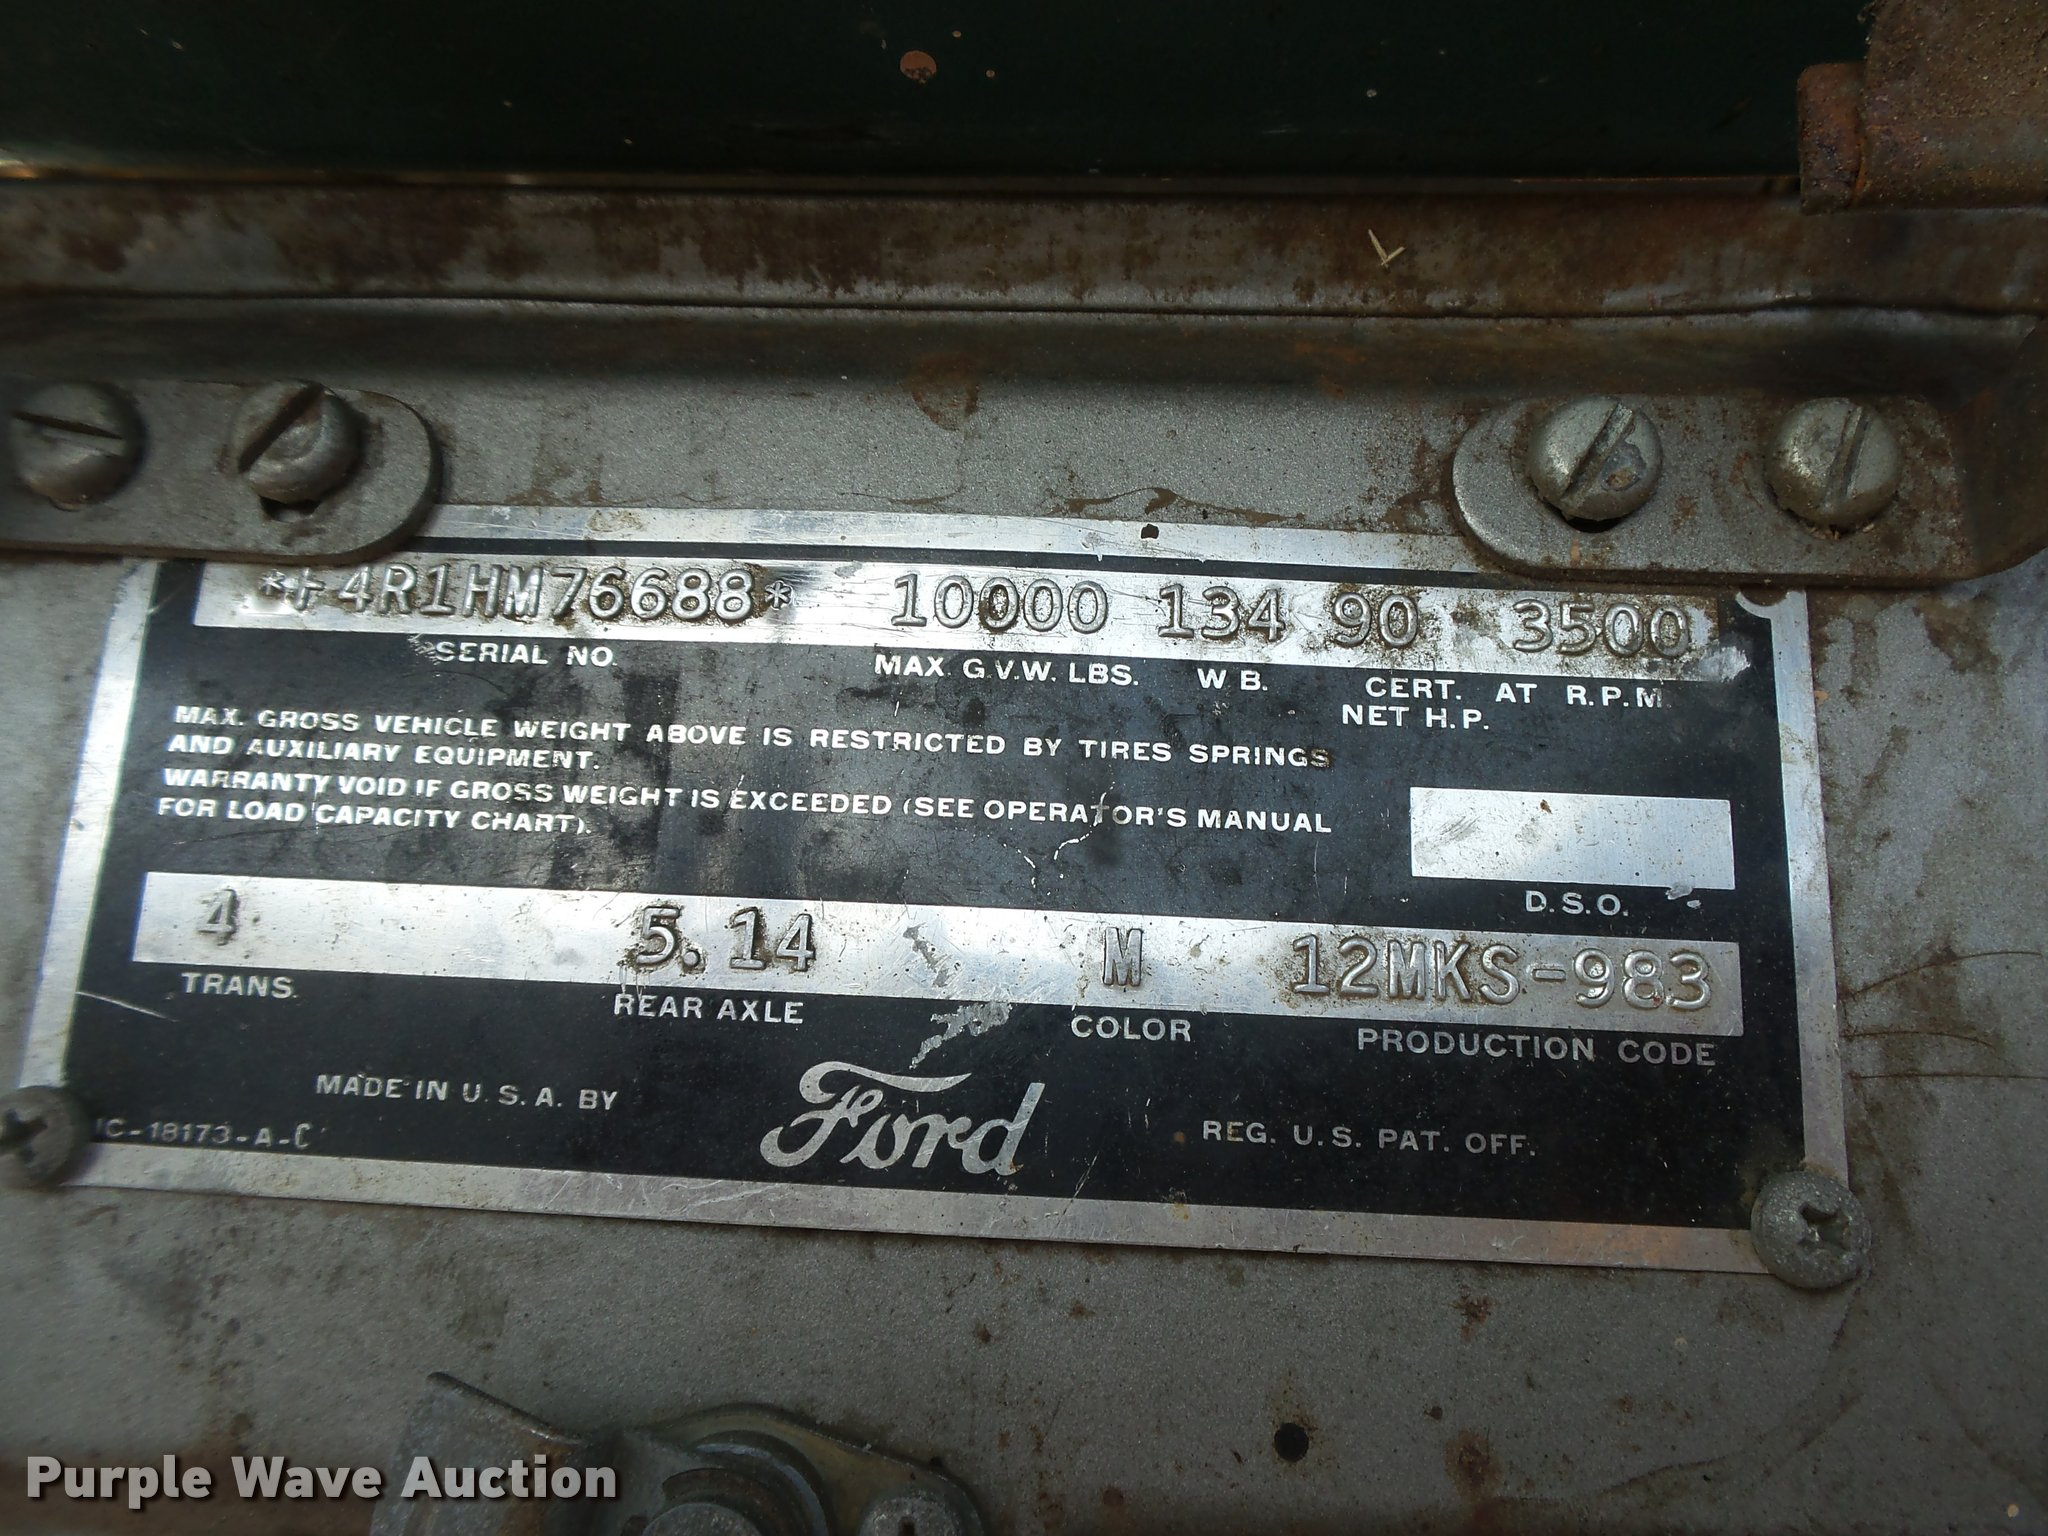 1951 ford f4 grain truck item db2687 sold july 26 ag eq full size in new window nvjuhfo Image collections